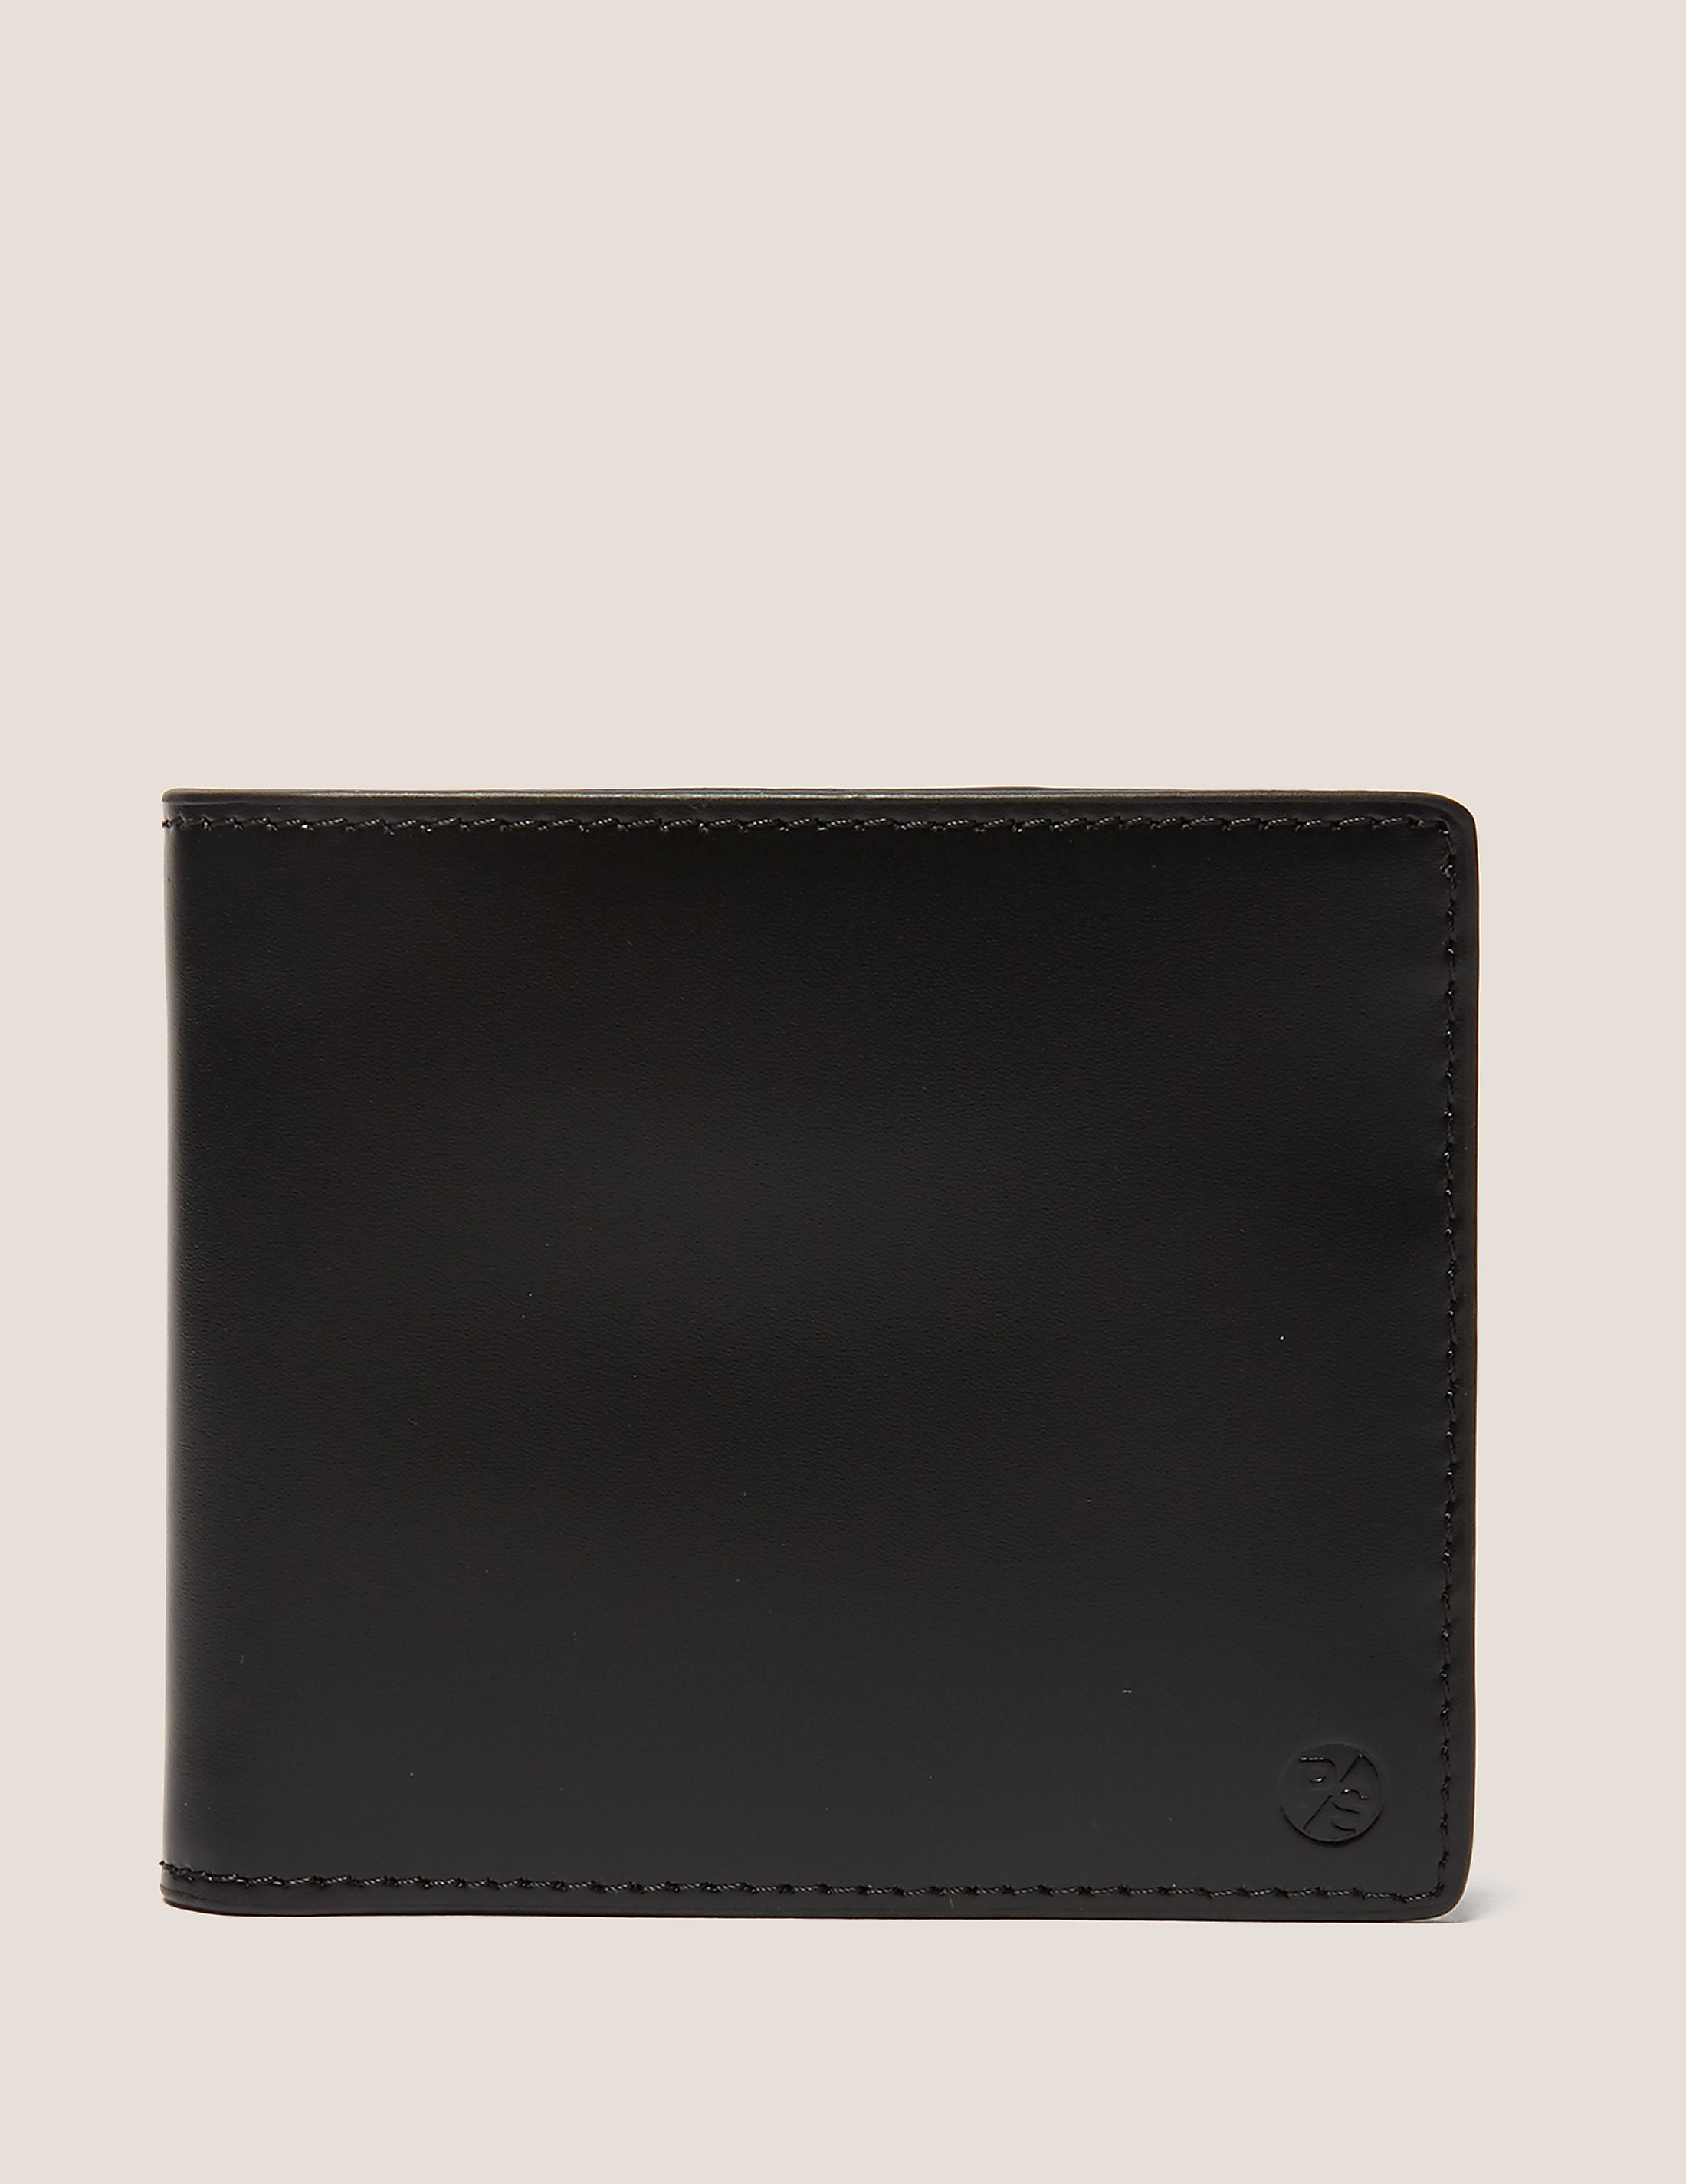 Paul Smith Cockatoo Billfold Wallet